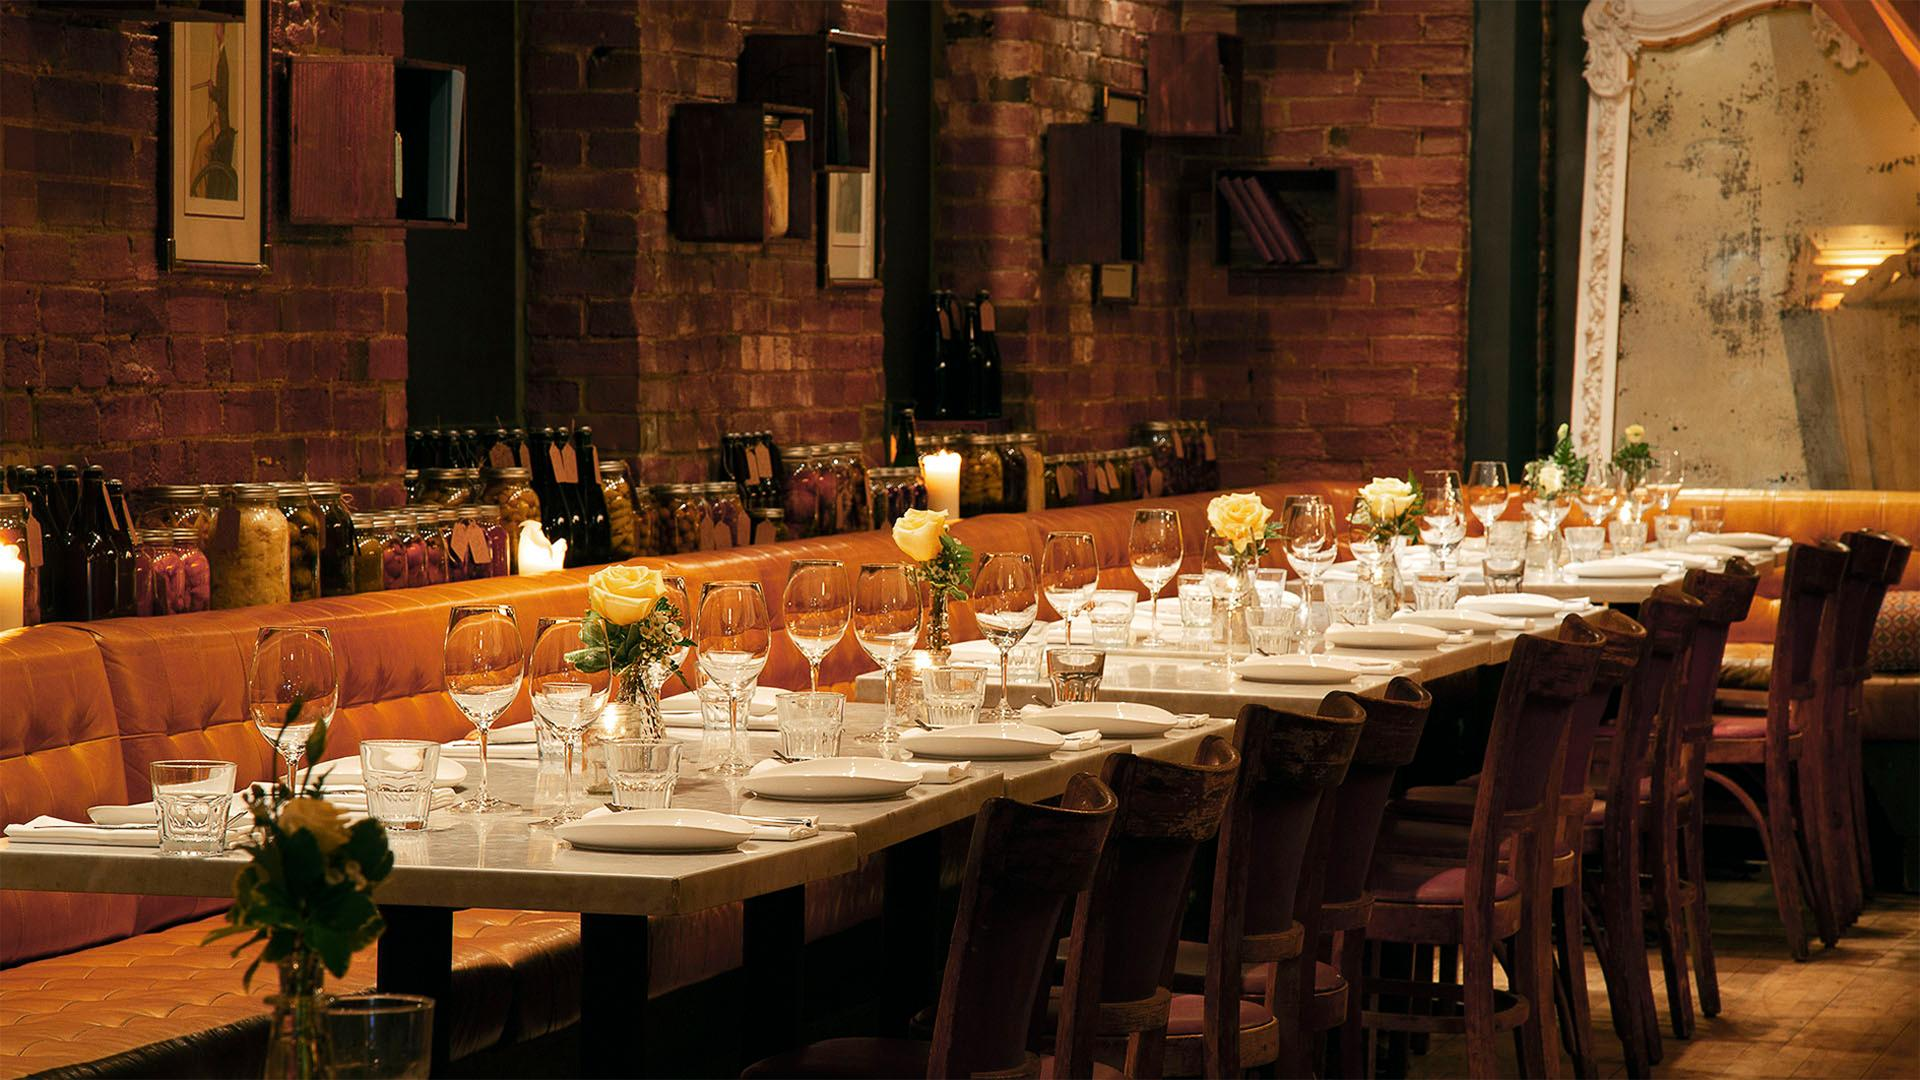 Best farm-to-table restaurants Toronto | A table set for dinner at Marben